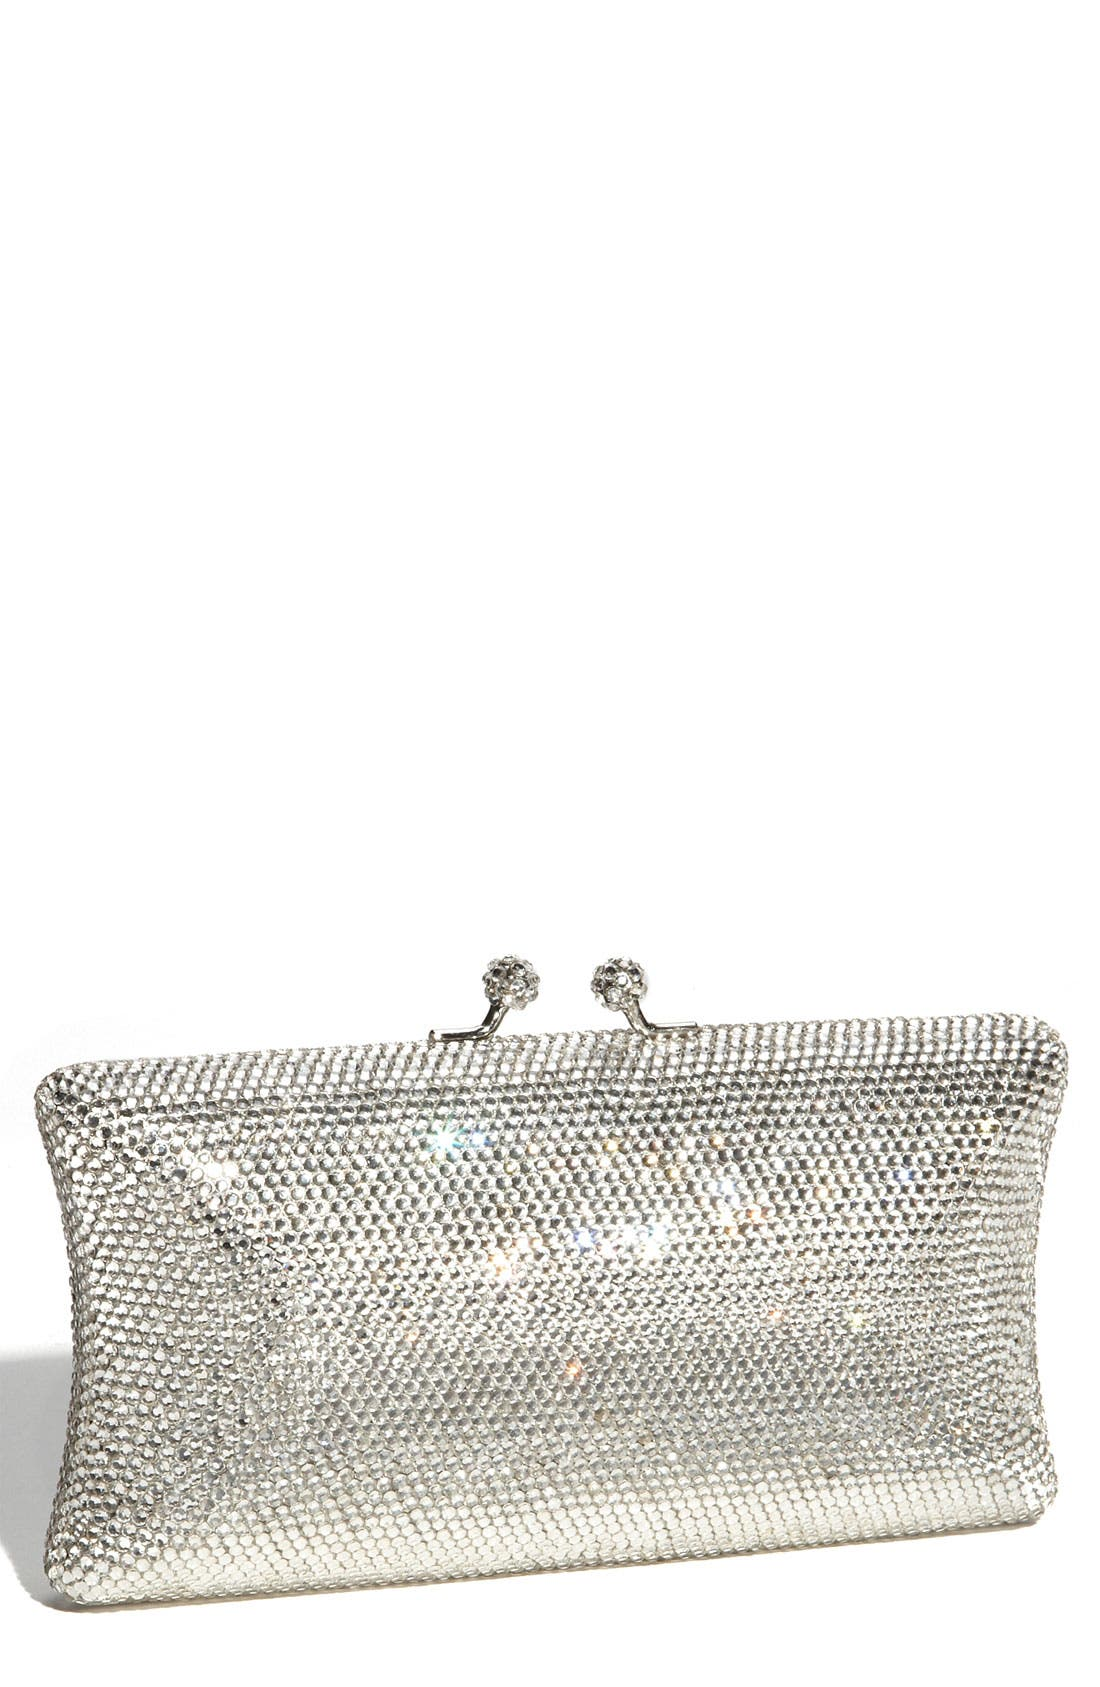 Alternate Image 1 Selected - Tasha Rhinestone Clutch